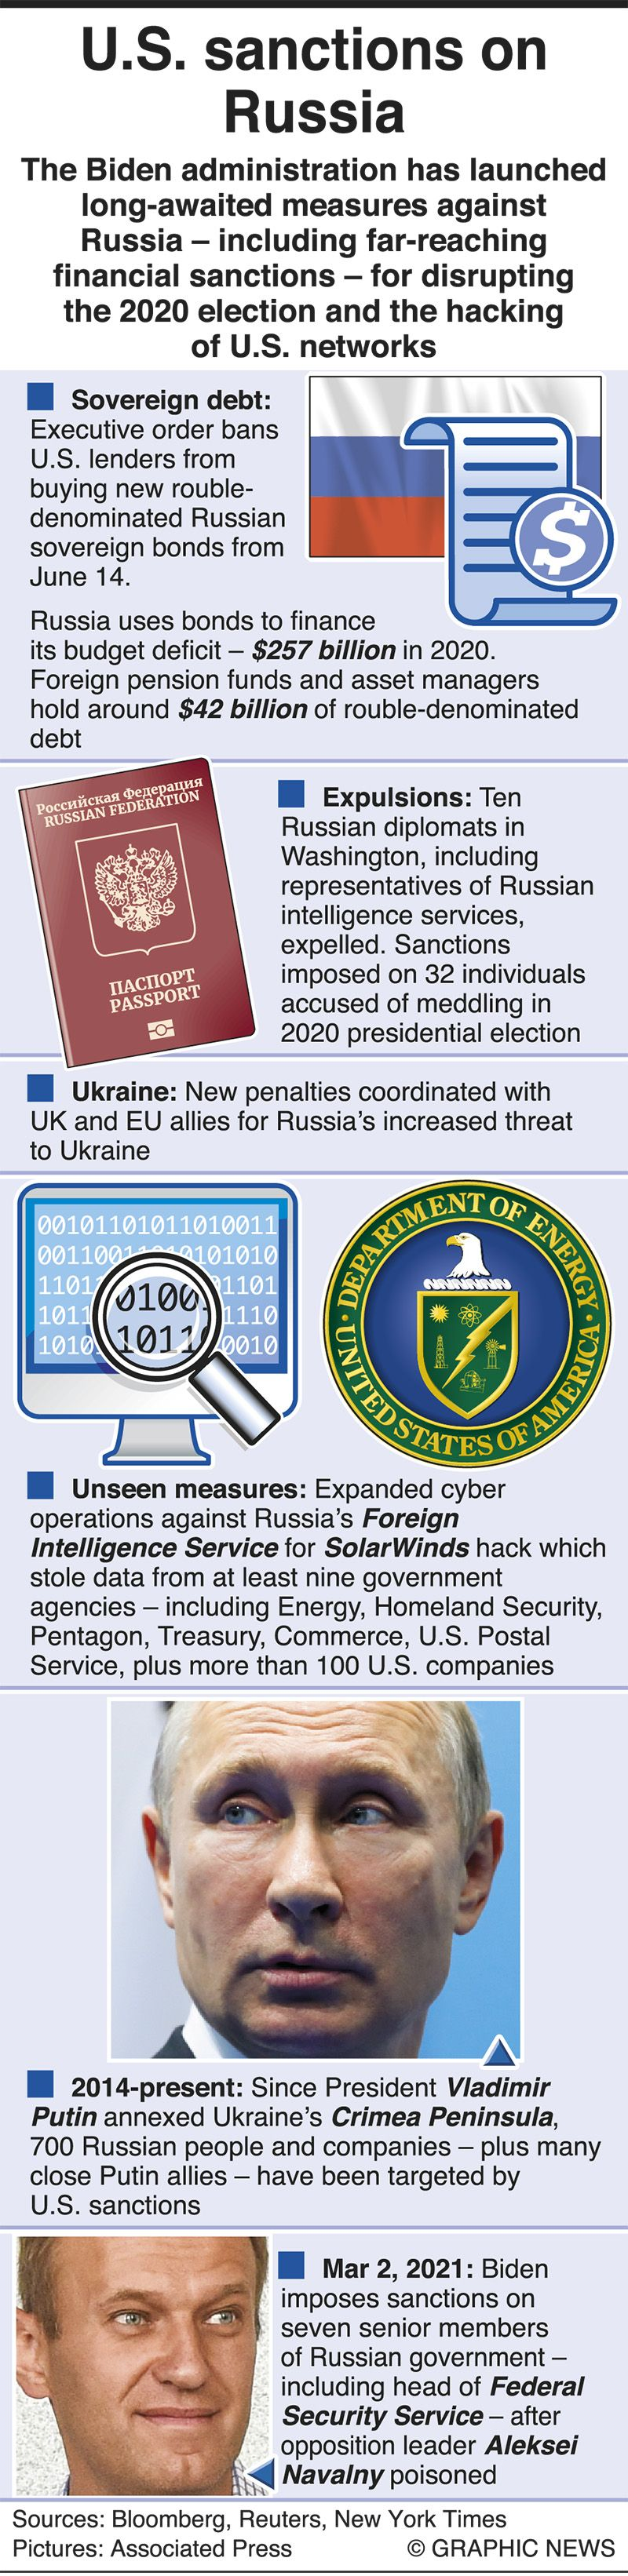 US sanctions on Russia